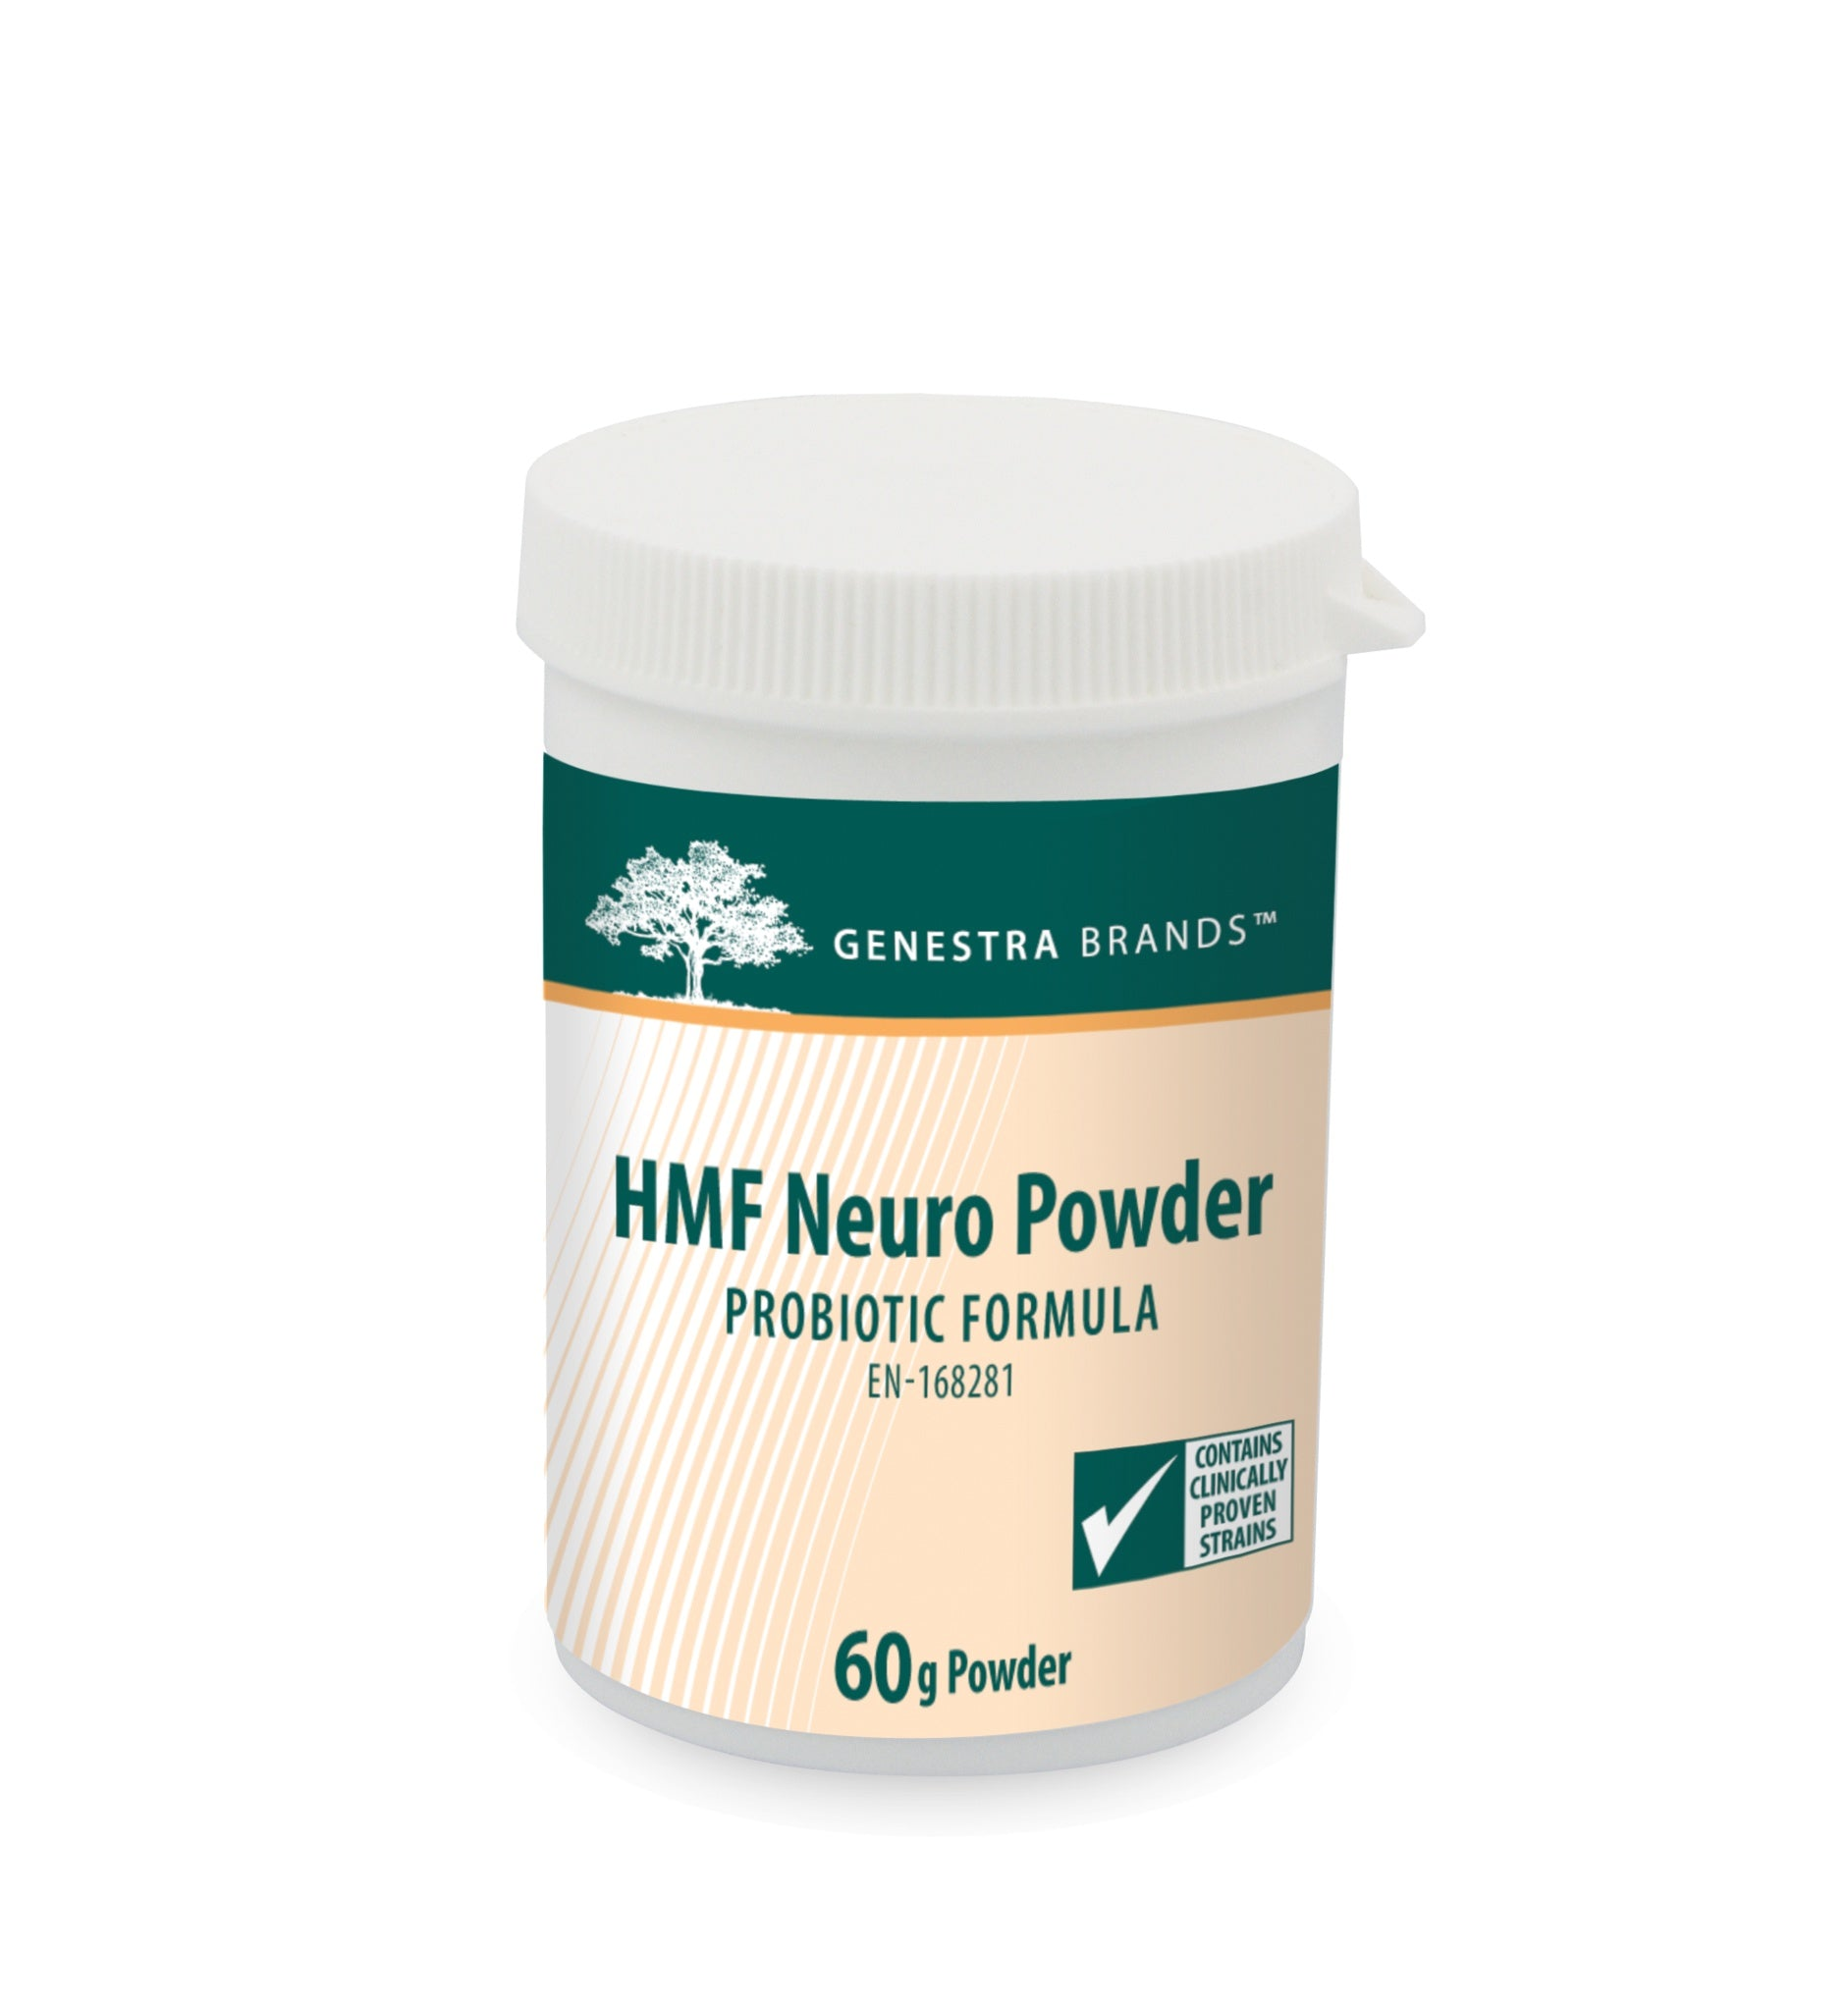 Supplements & Vitamins - Genestra - HMF Neuro Powder, 60g